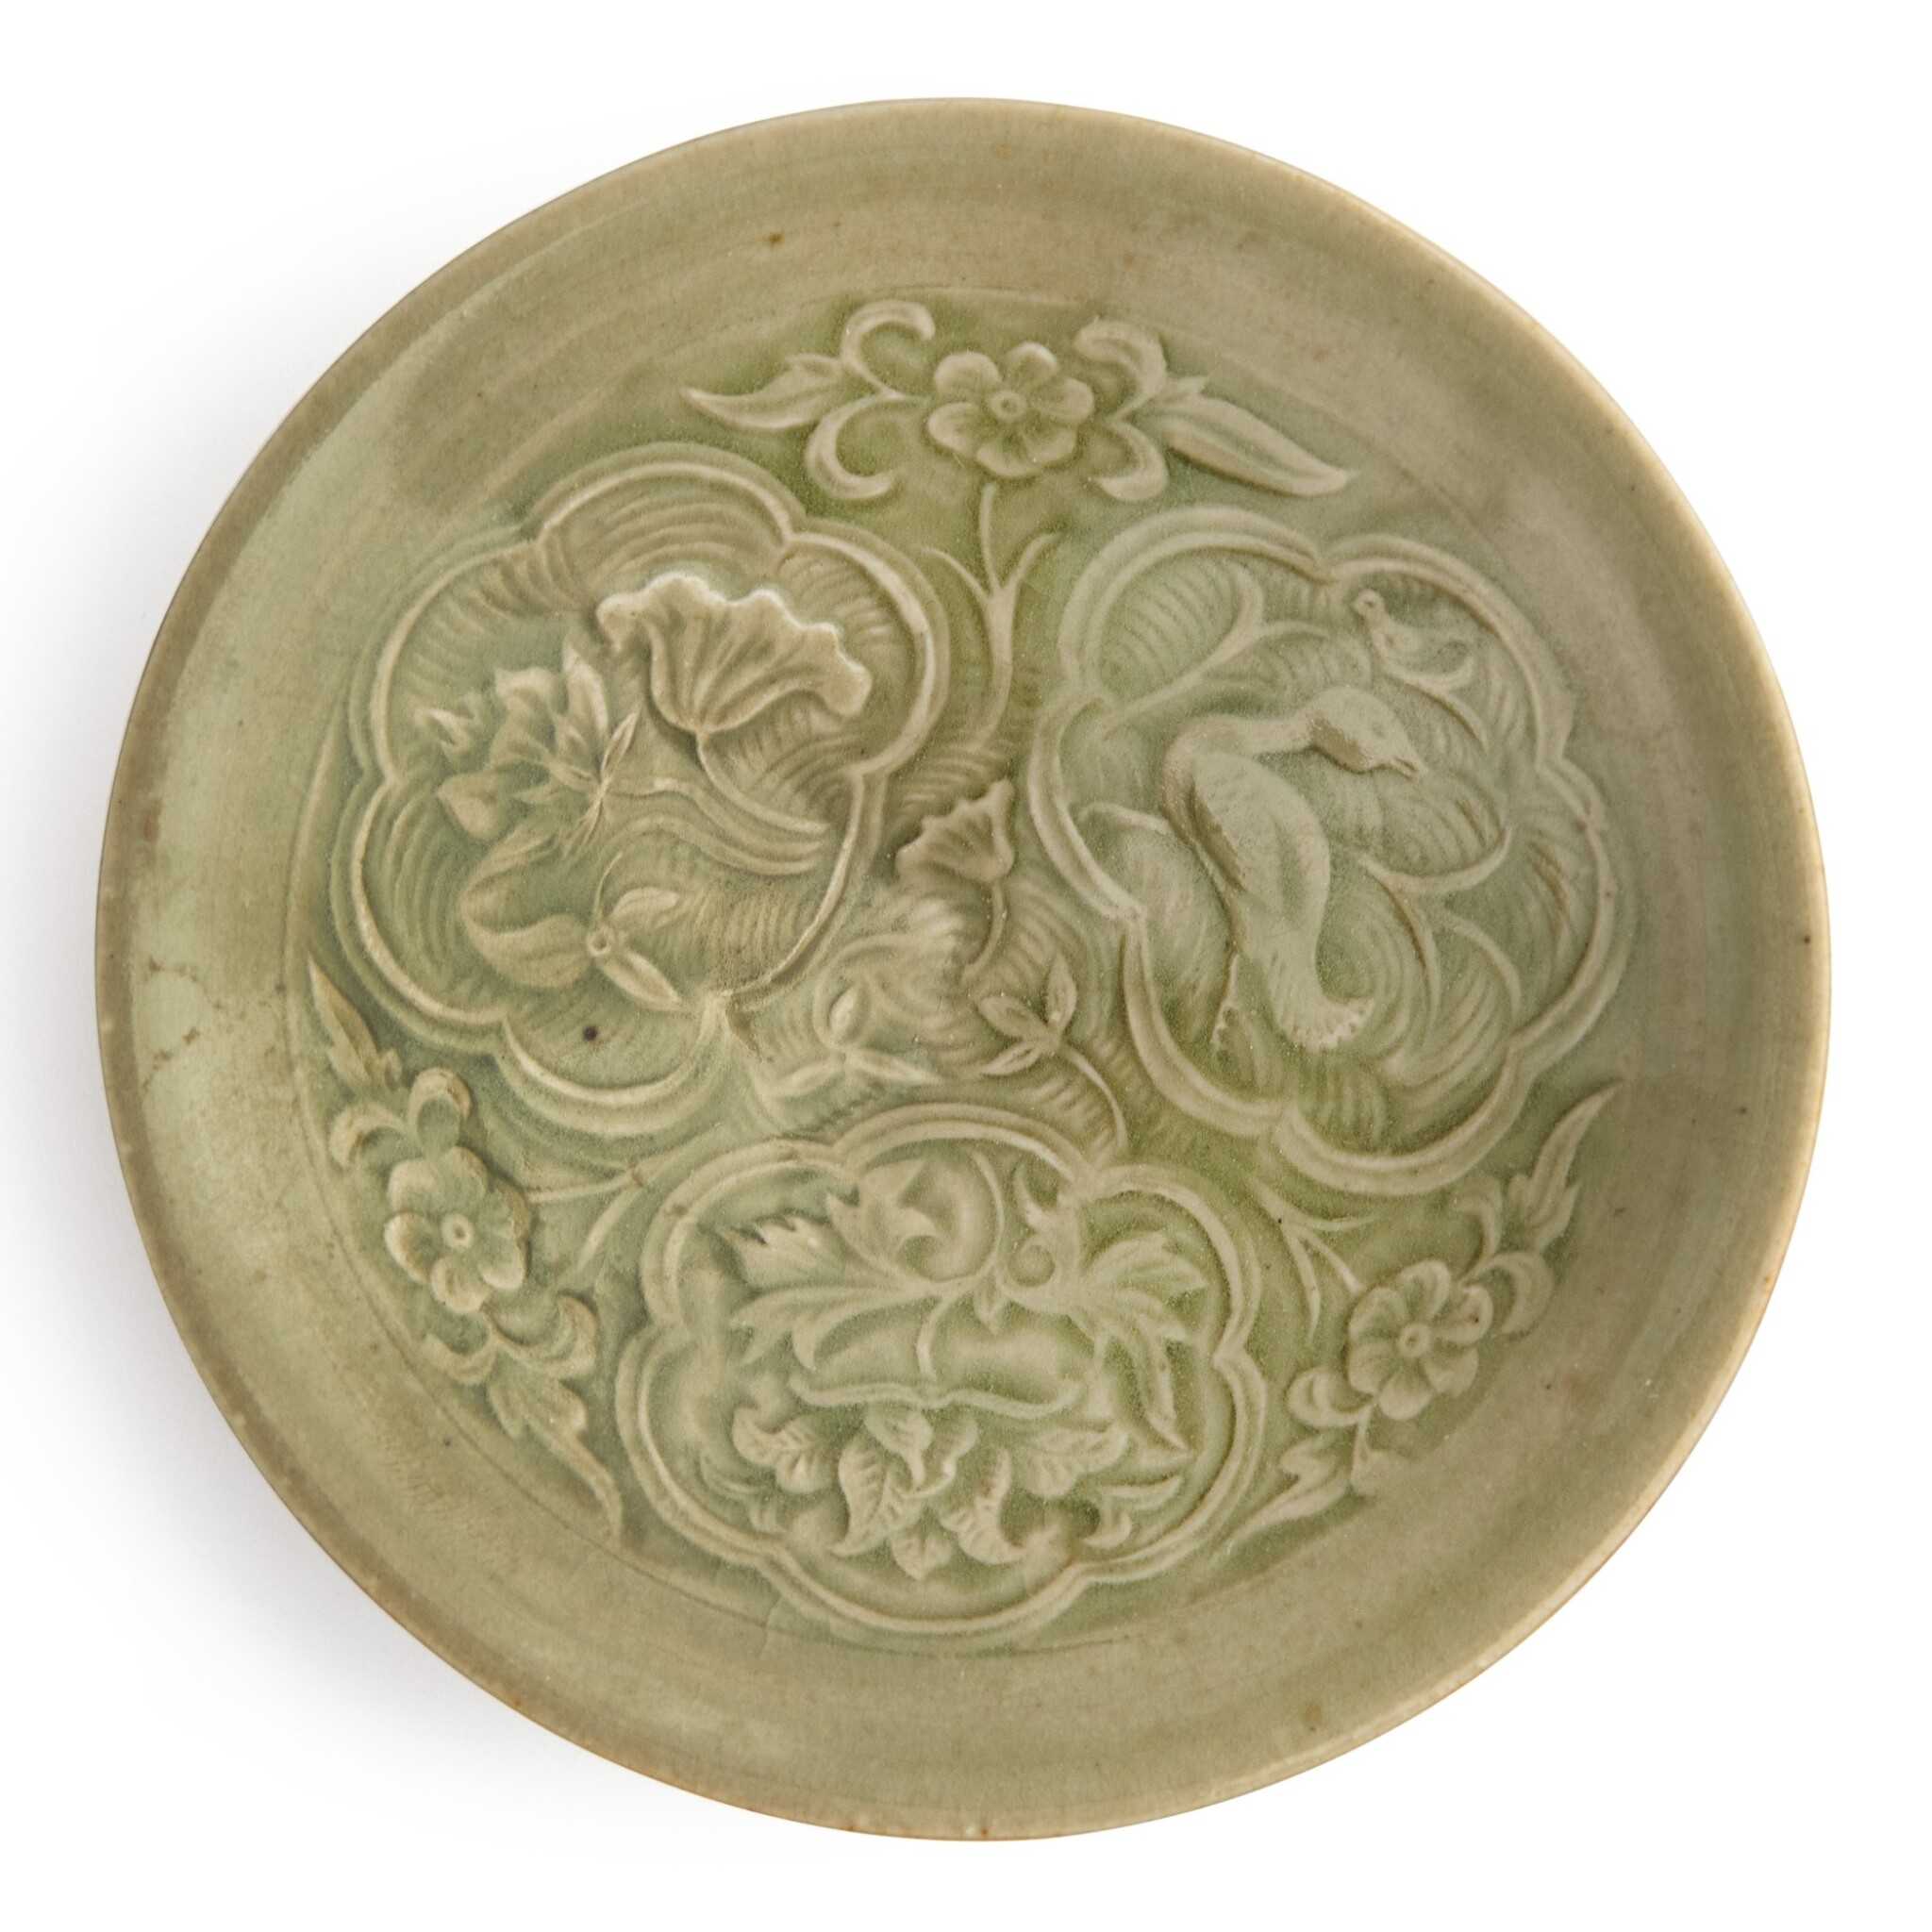 View full screen - View 1 of Lot 110. A rare small molded 'Yaozhou' celadon-glazed bowl, Northern Song / Jin dynasty | 北宋 / 金 耀州窰青釉印花鴛鴦花卉紋小笠式盌.